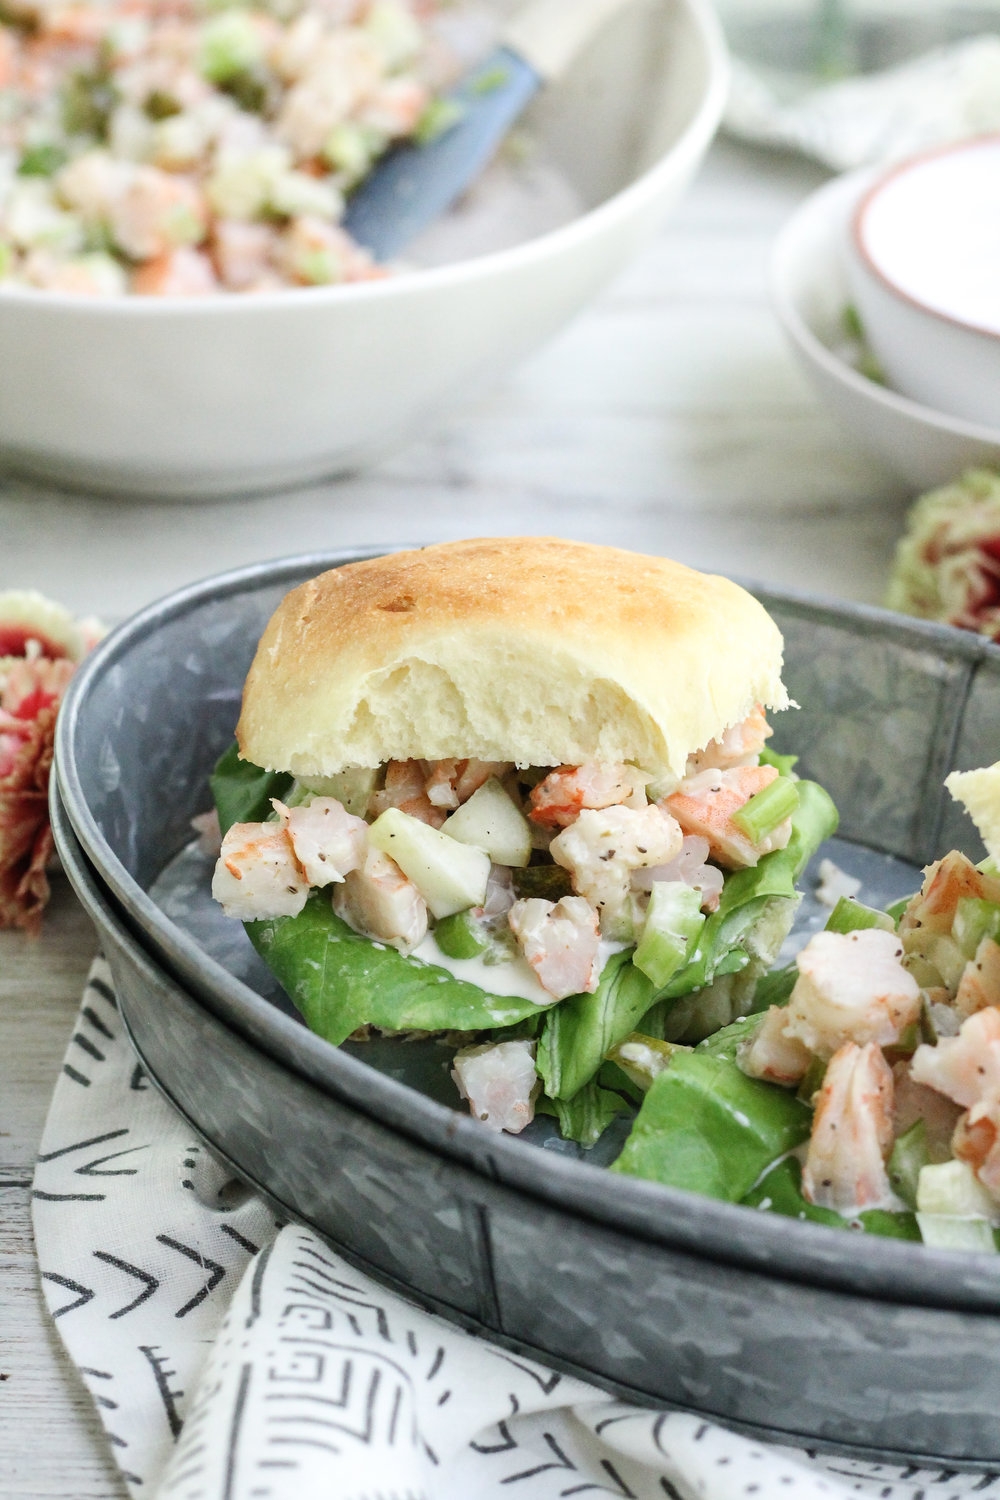 Gaga's Shrimp Salad : A simple, southern favorite from the archives of my grandmother. [ www.pedanticfoodie.com ]